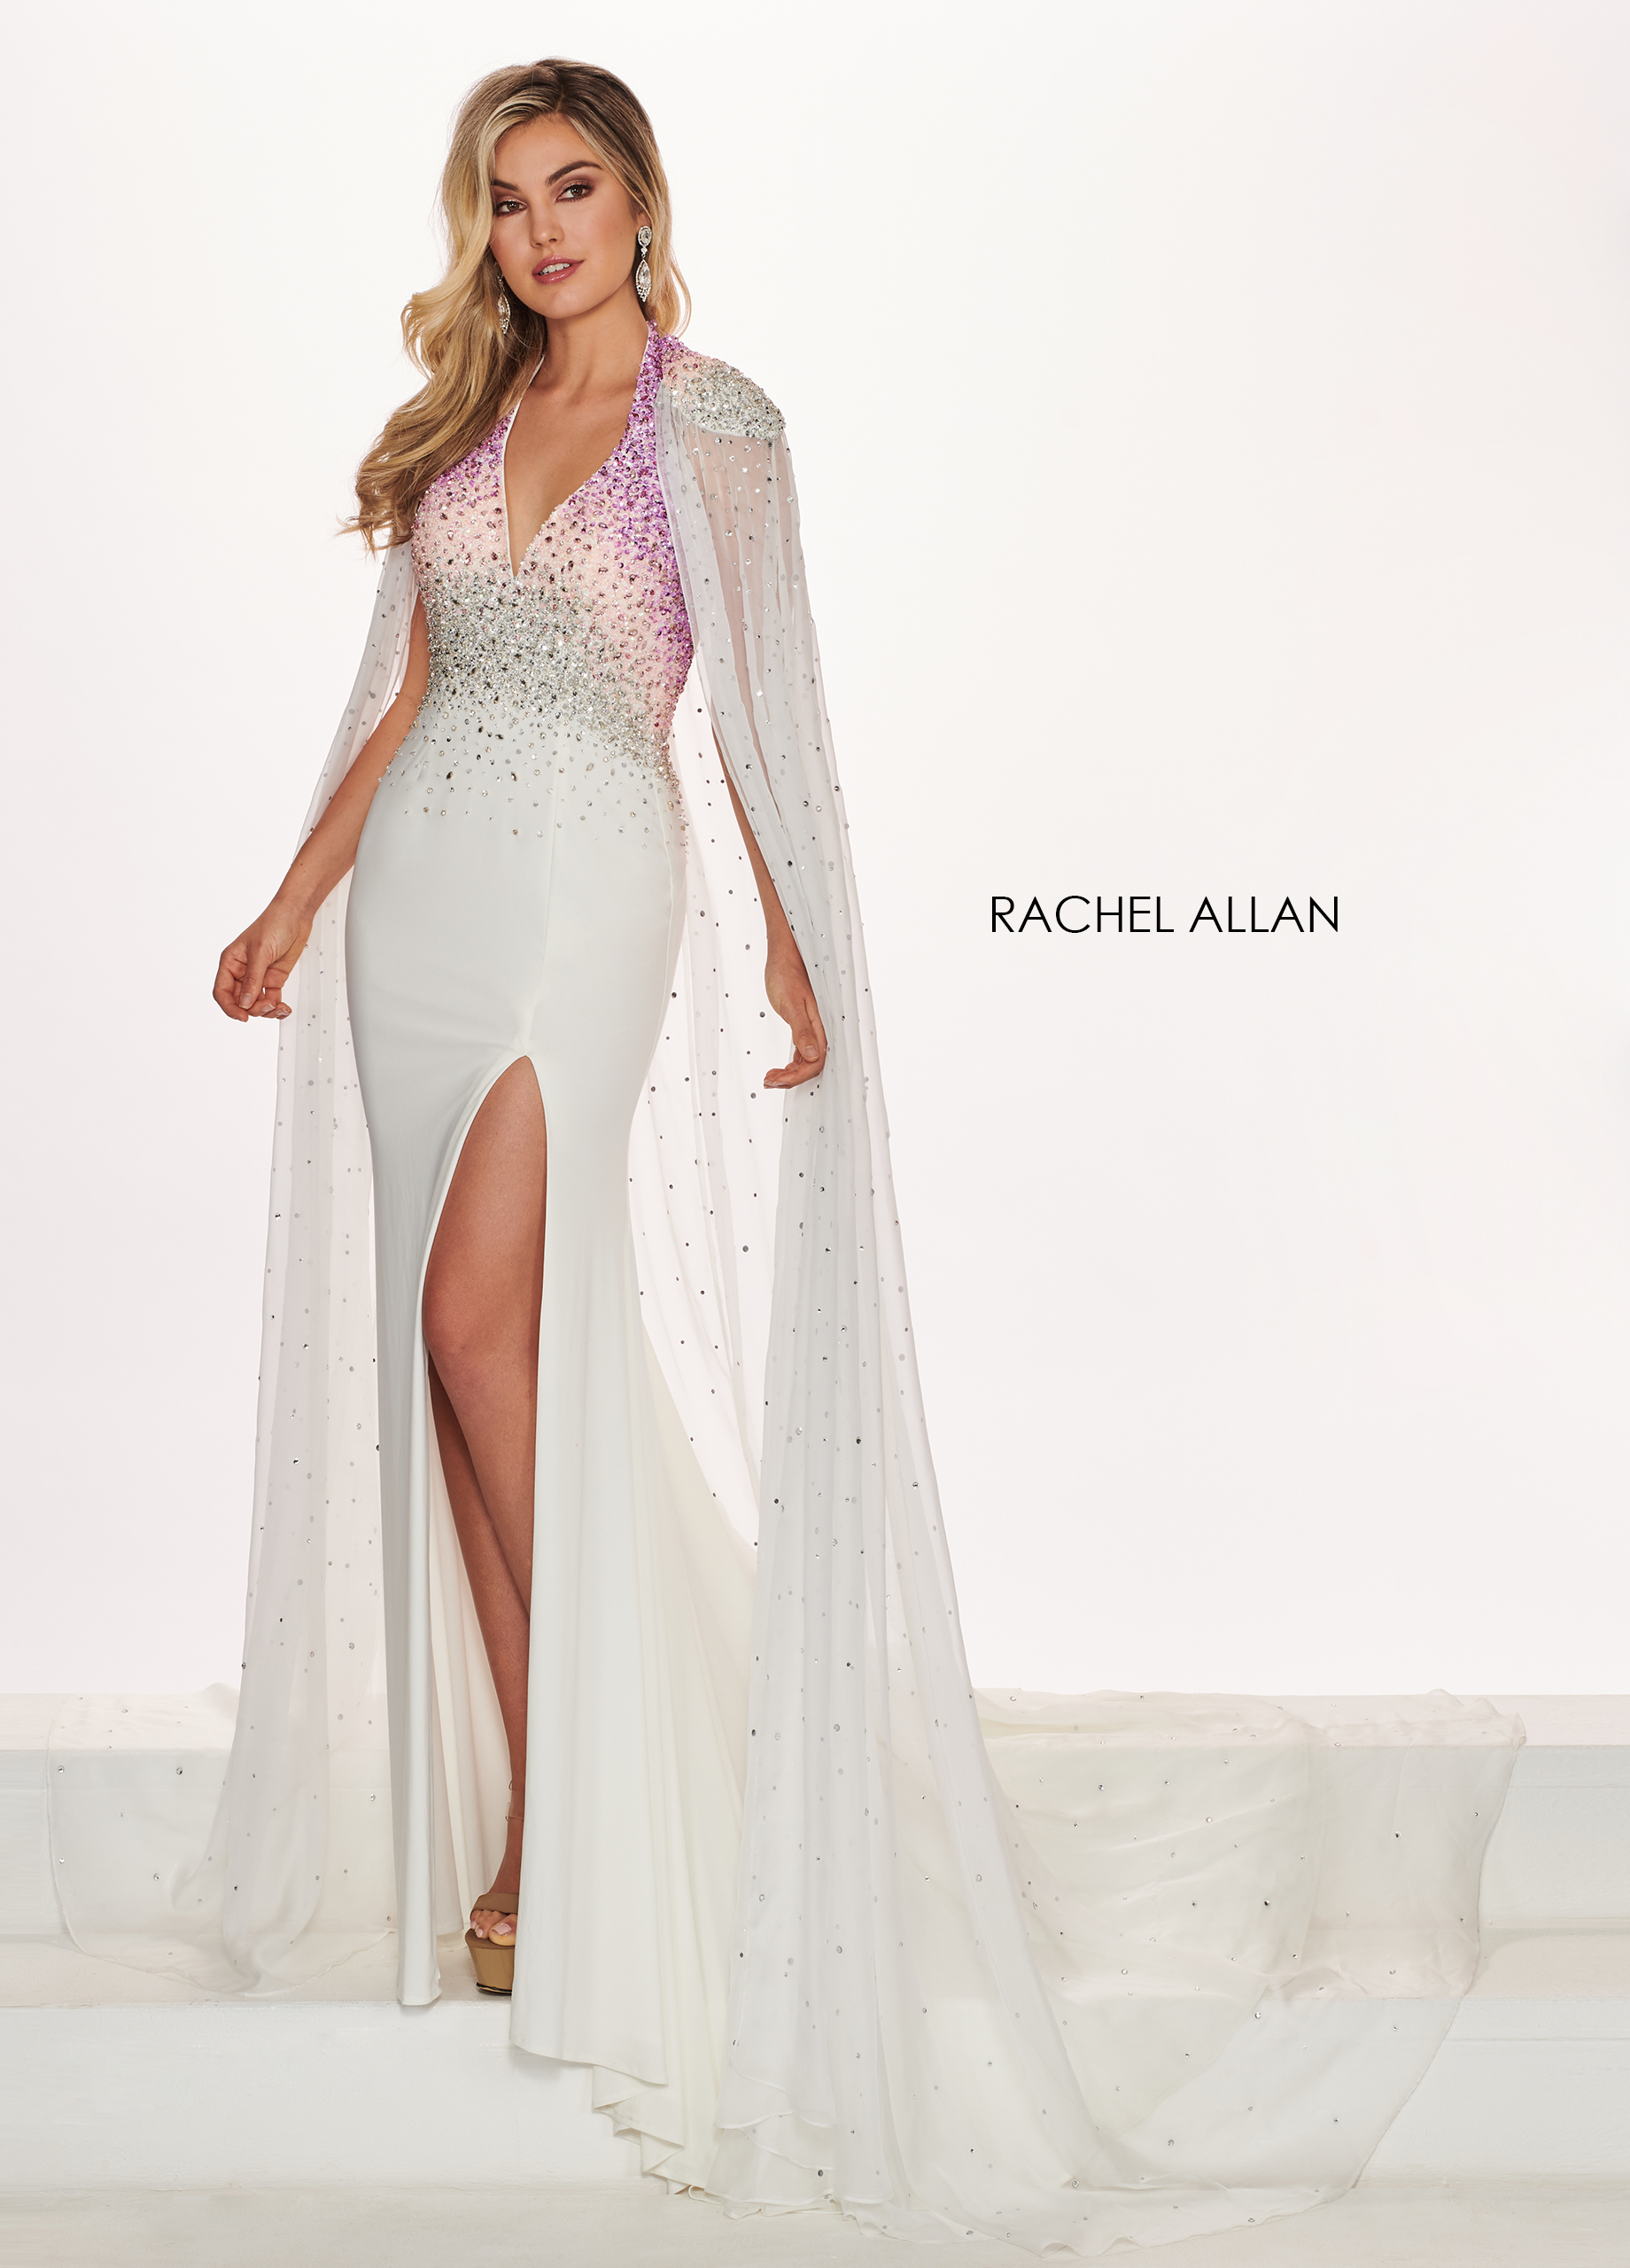 Halter Mermaid Pageant Dresses in White Color